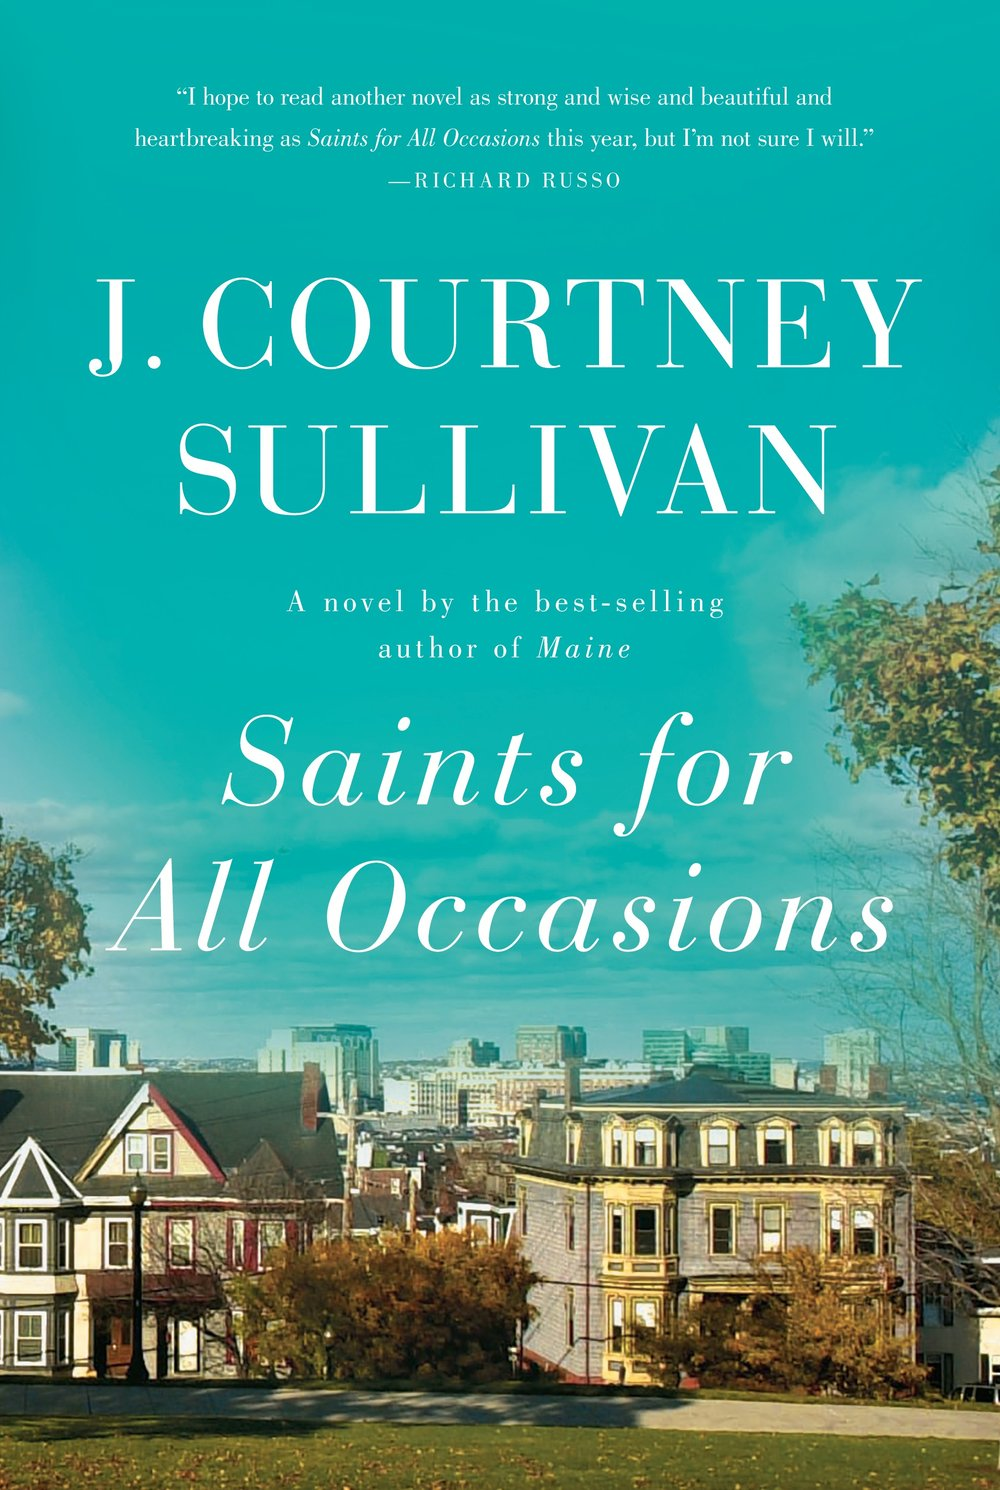 Saints for All Occasions  by J. Courtney Sullivan  Knopf --- May 6, 2017